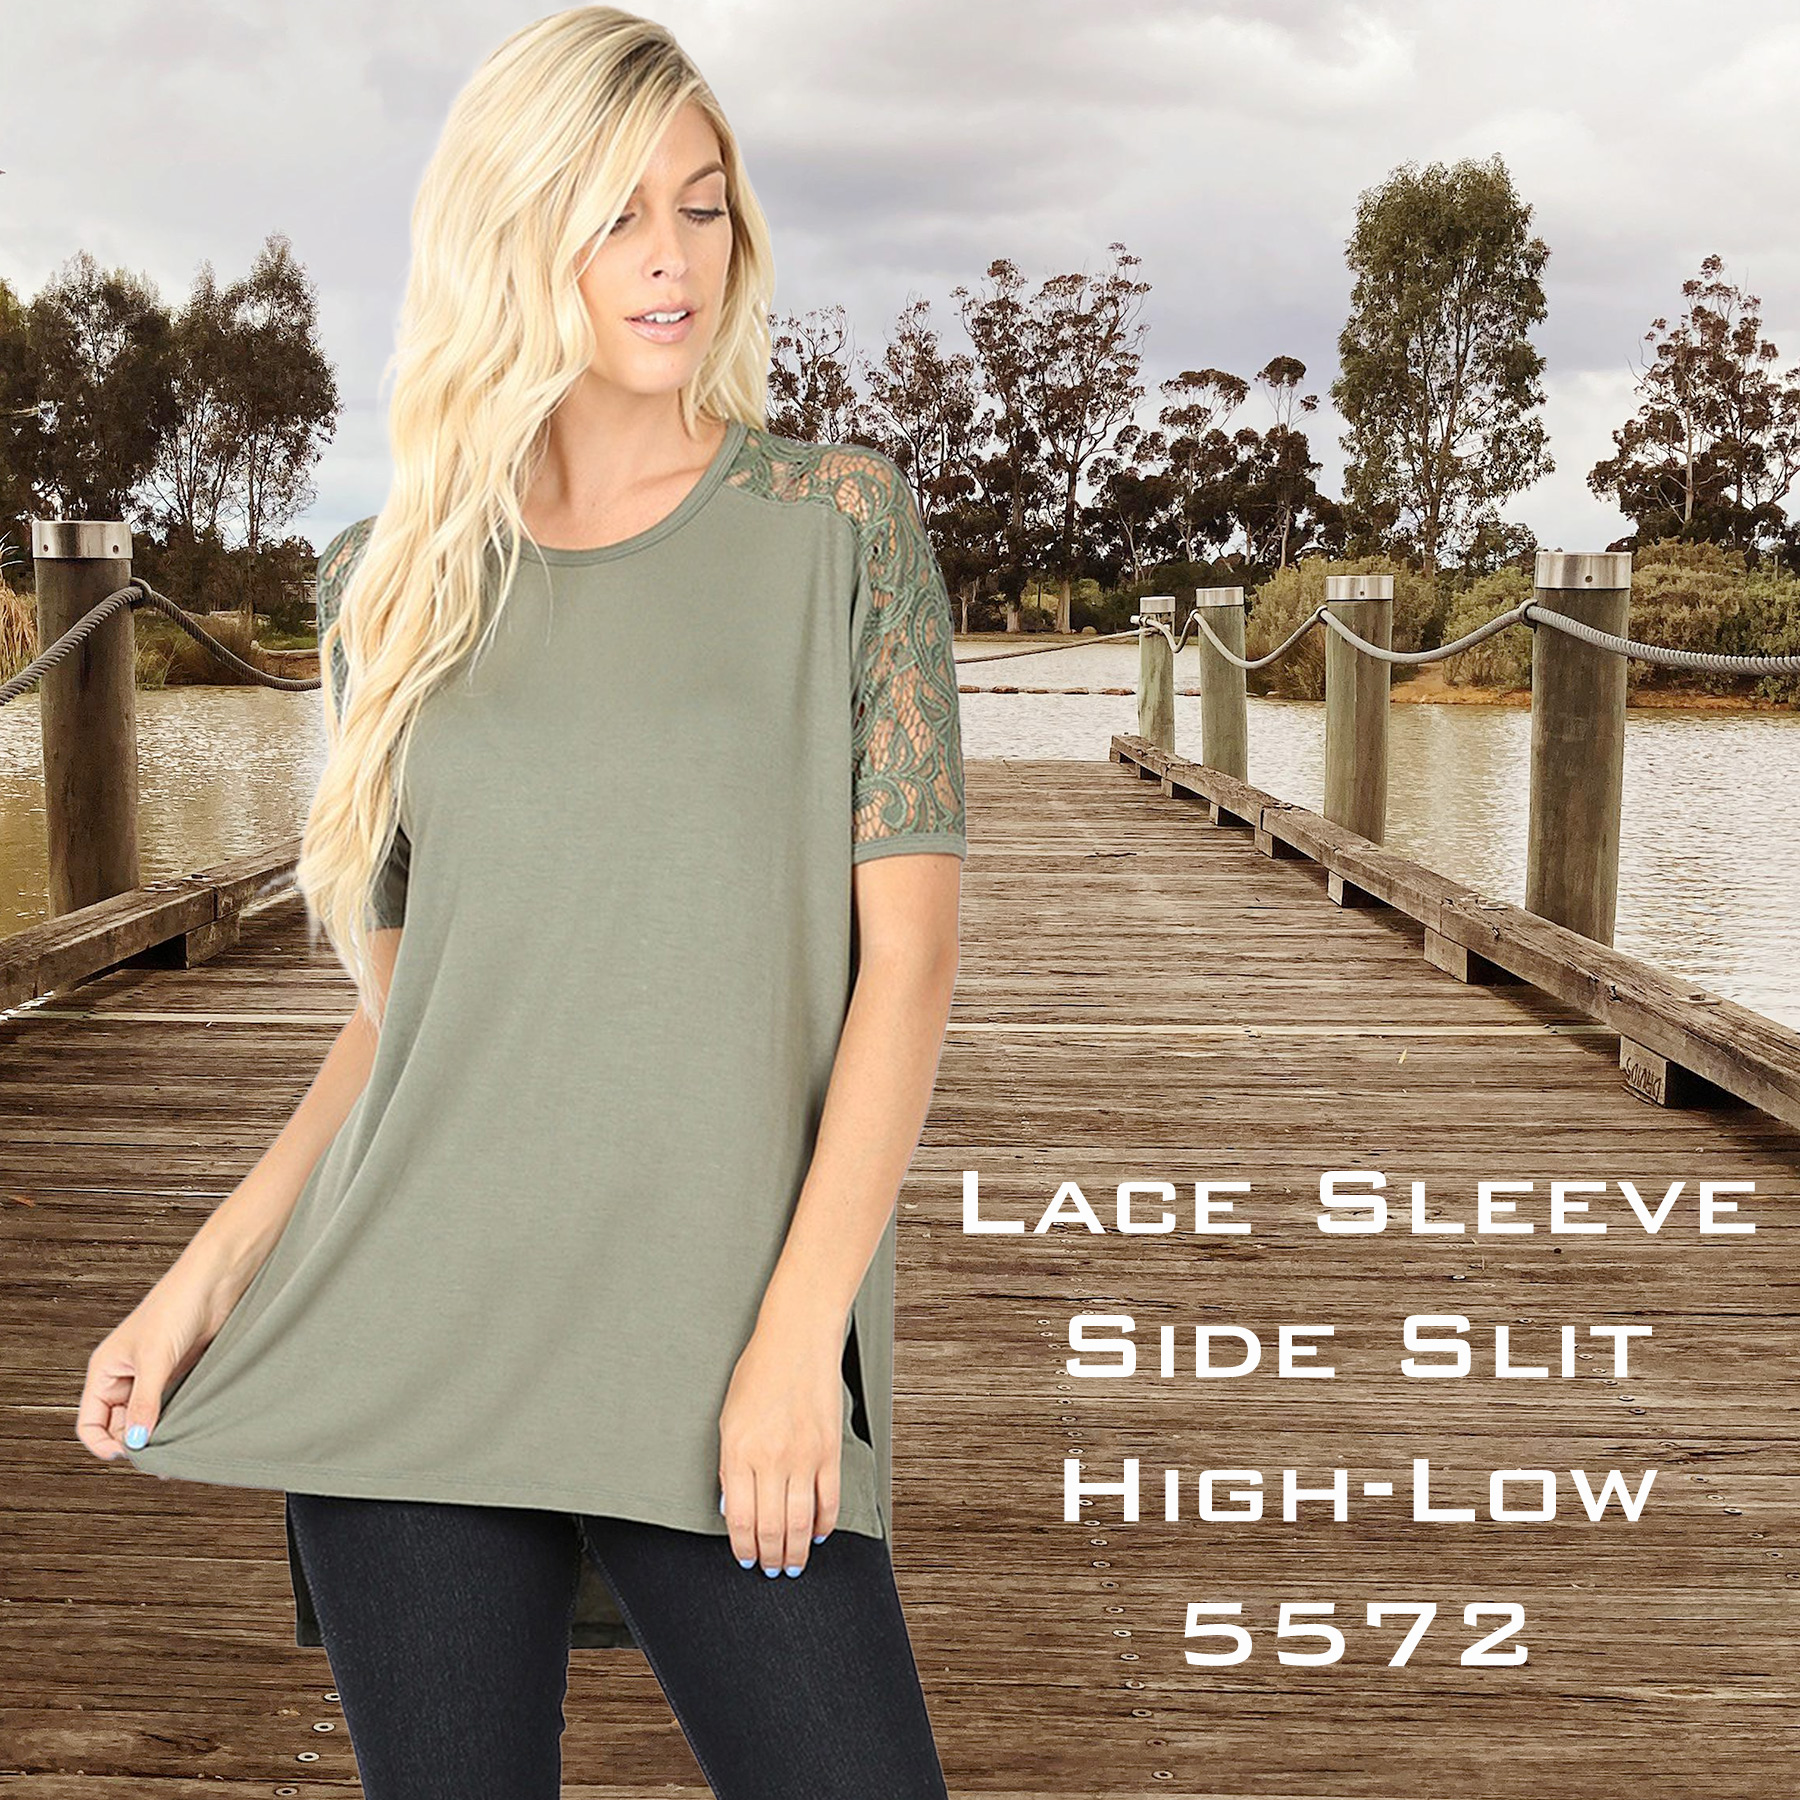 Wholesale Lace Sleeve Side Slit Tops - 5572